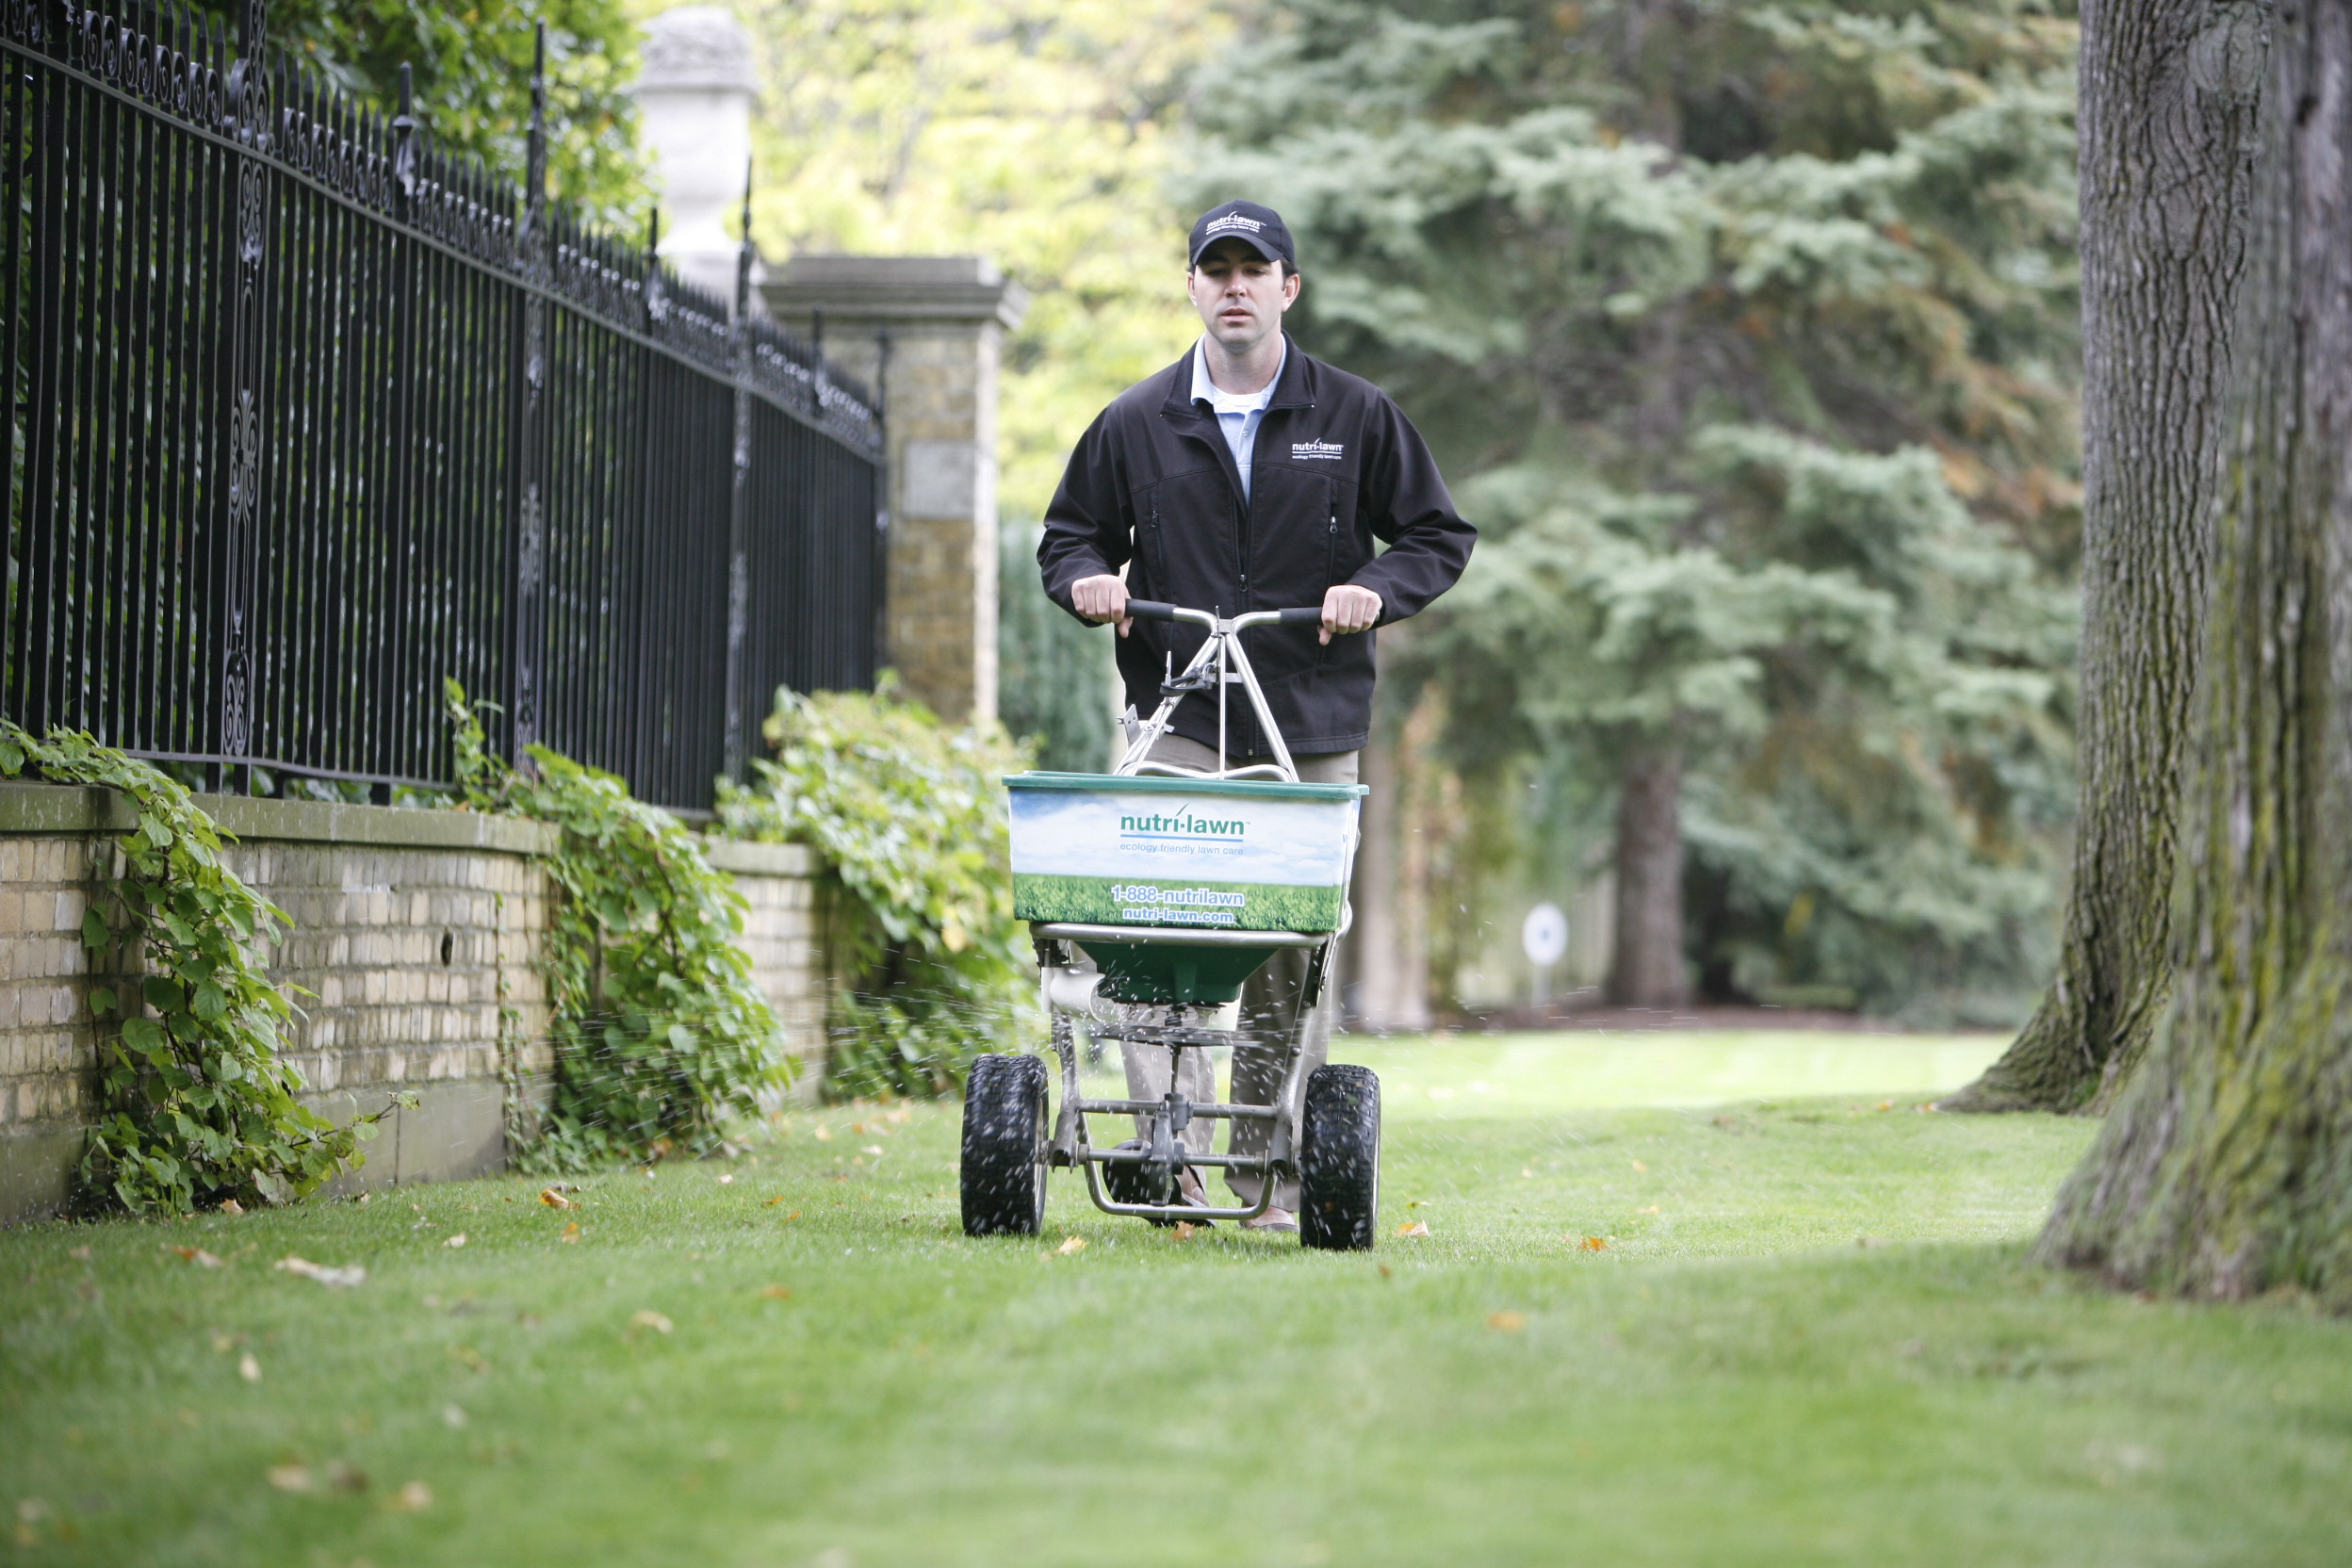 It's Time To Fertilize Your Lawn - Featured Image